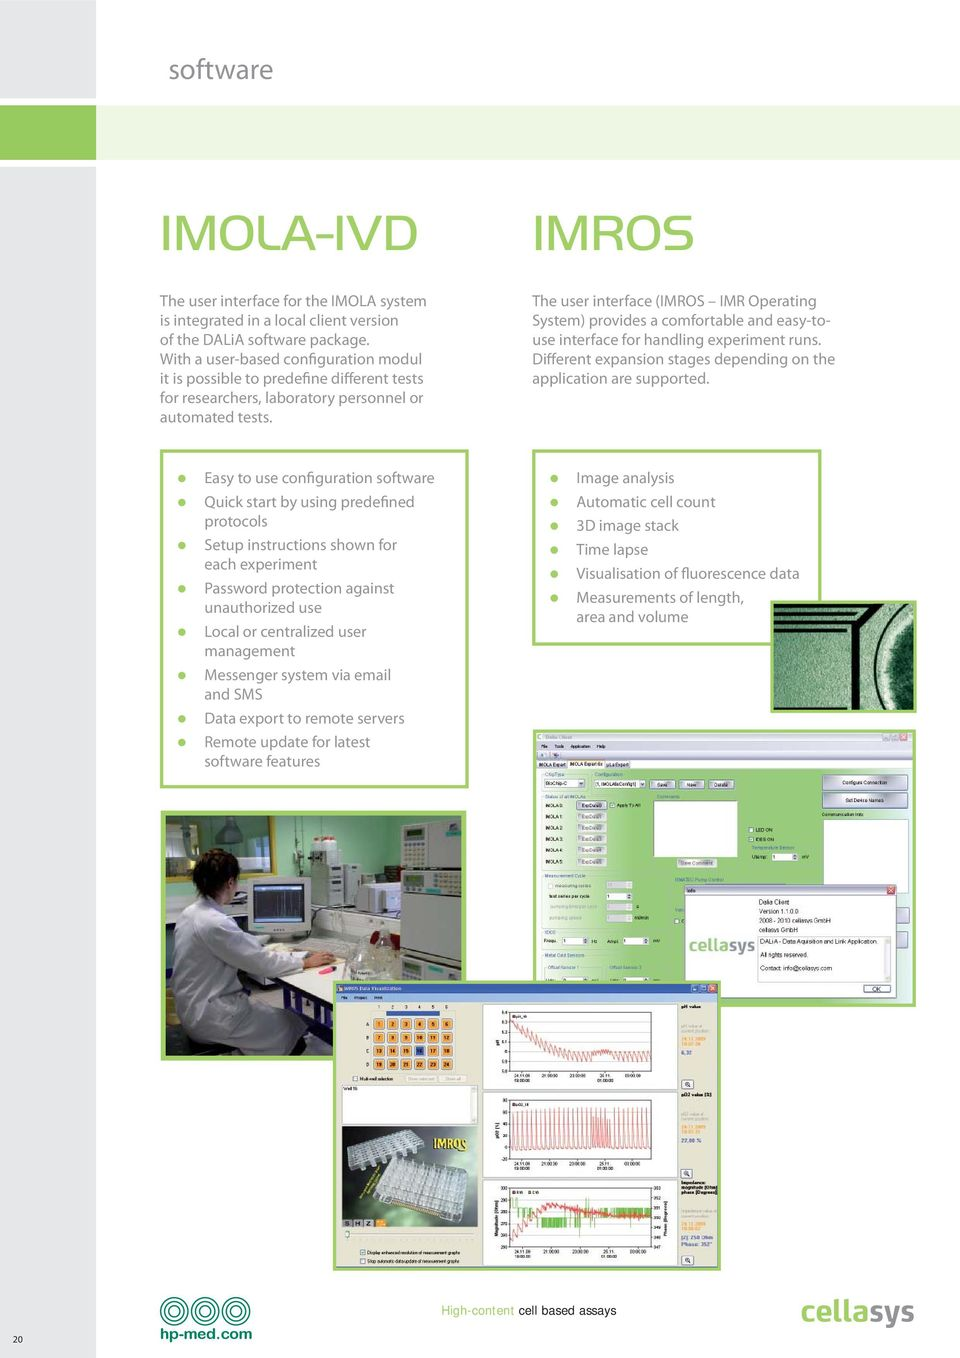 The user interface (IMROS IMR Operating System) provides a comfortable and easy-touse interface for handling experiment runs. Different expansion stages depending on the application are supported.